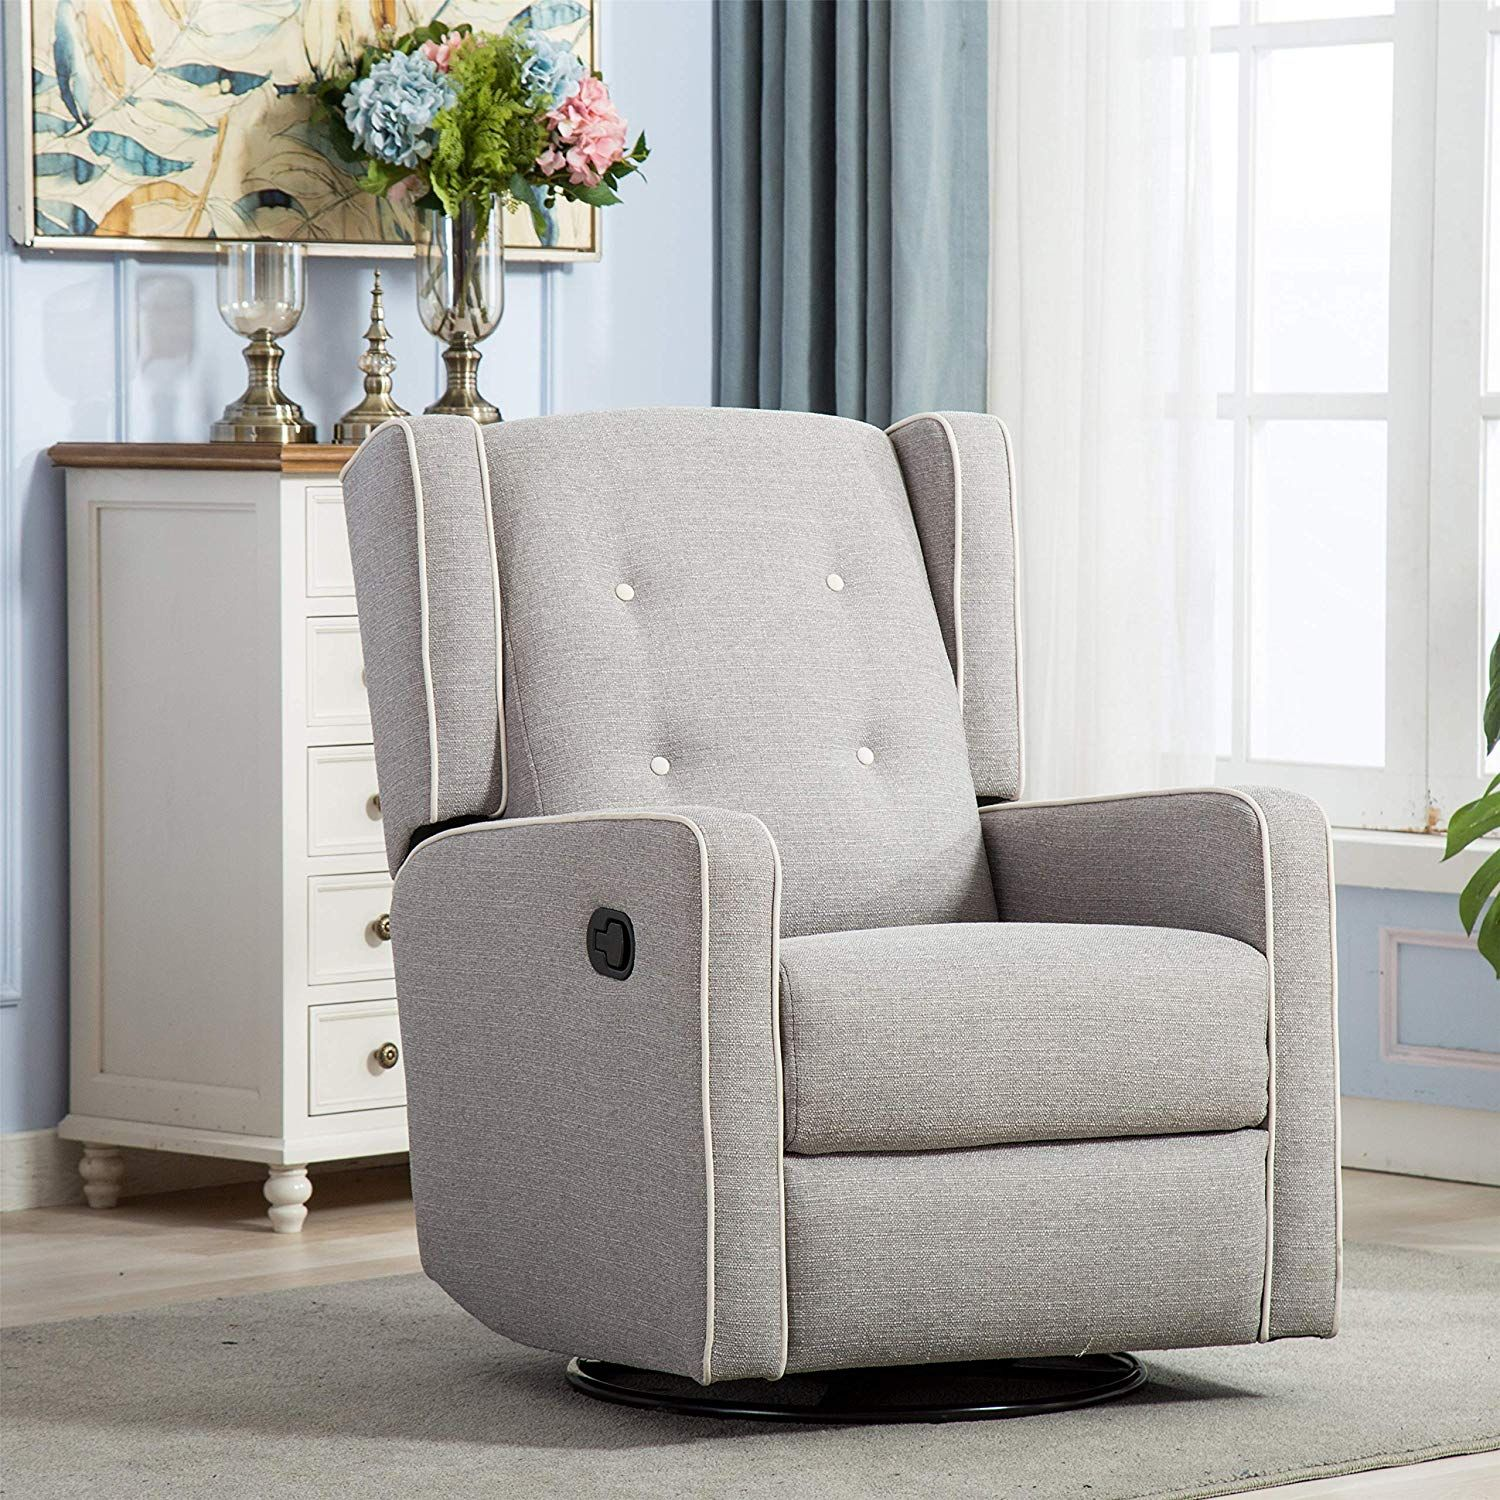 Canmov Swivel Rocker Fabric Manual Recliner Chair For Living Room Soft Microfiber Single Seat Reclining Swivel Rocker Chair Rocker Chairs Living Room Recliner #swivel #reclining #chairs #for #living #room